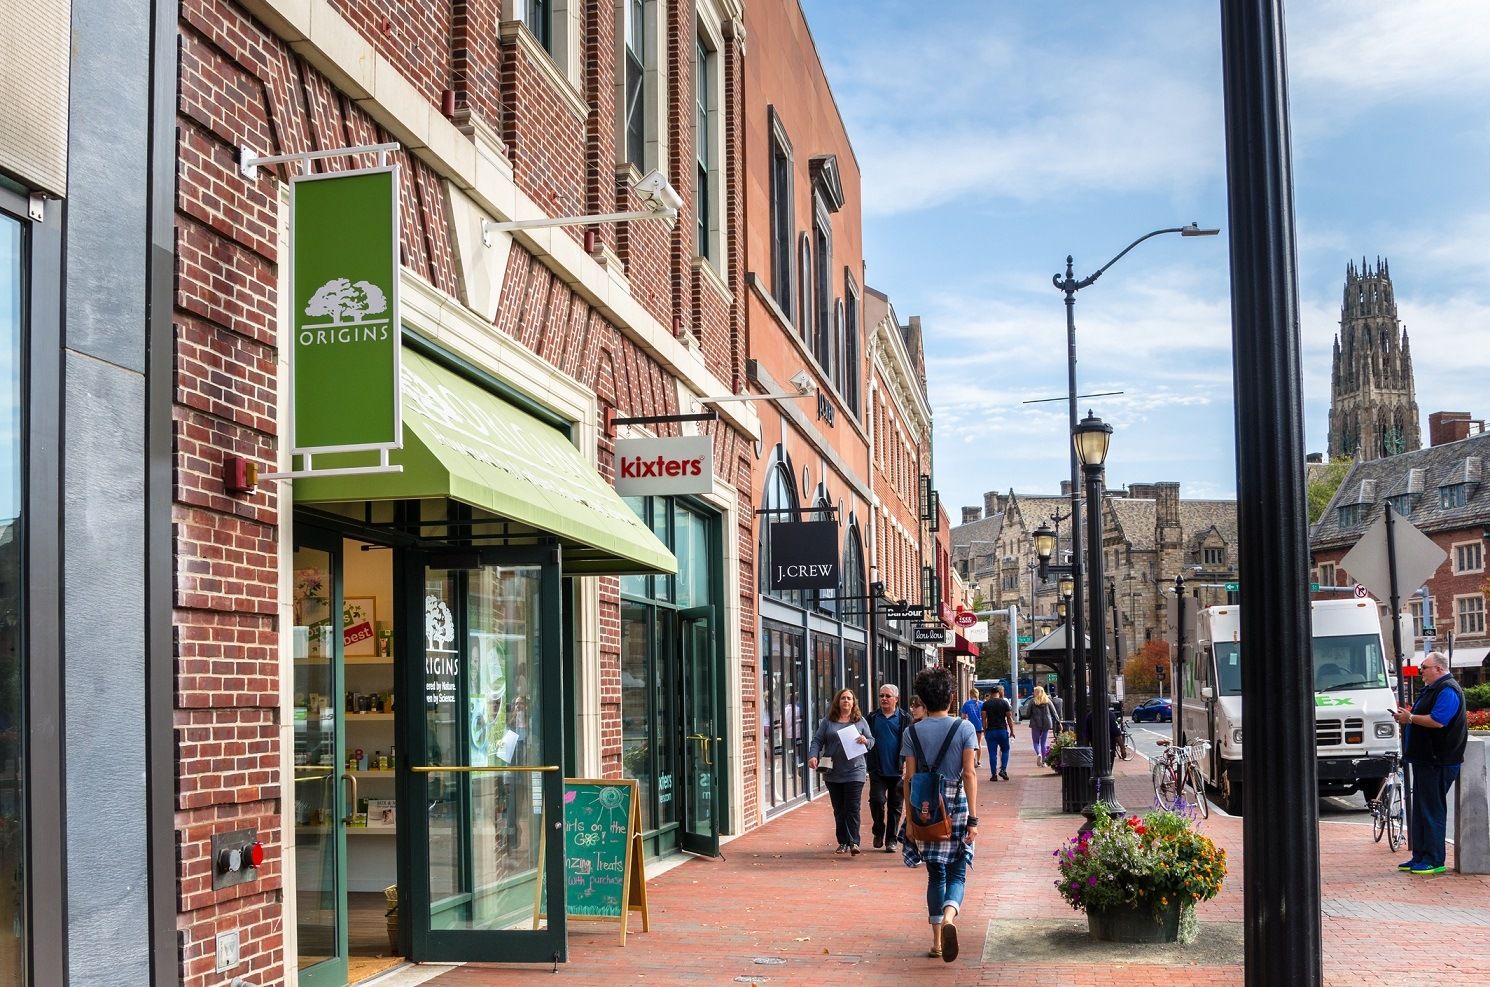 A street in New Haven, Connecticut.